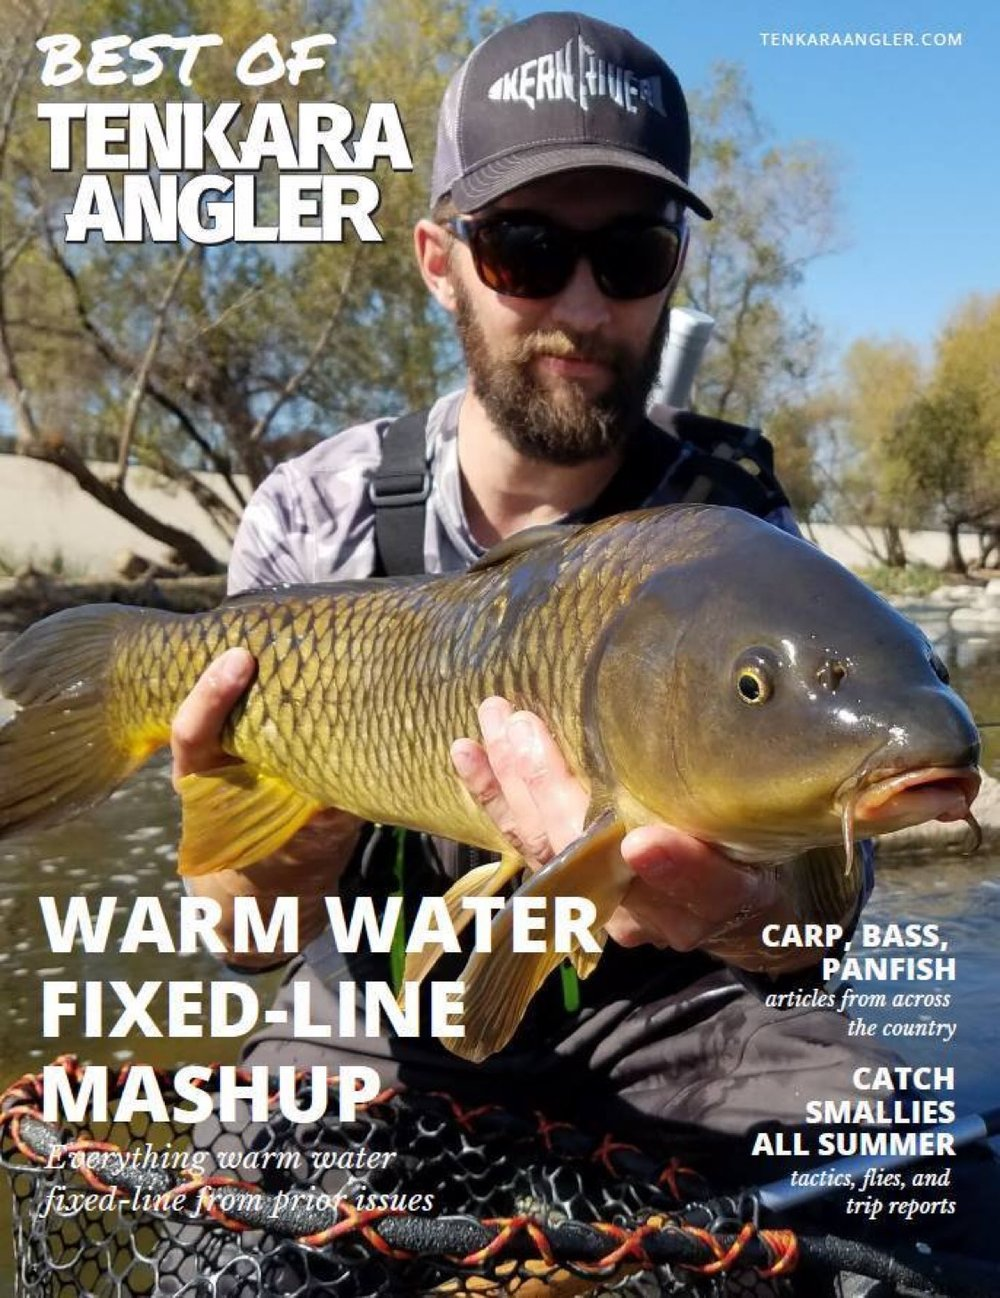 The warm water edition of the Tenkara Angler!